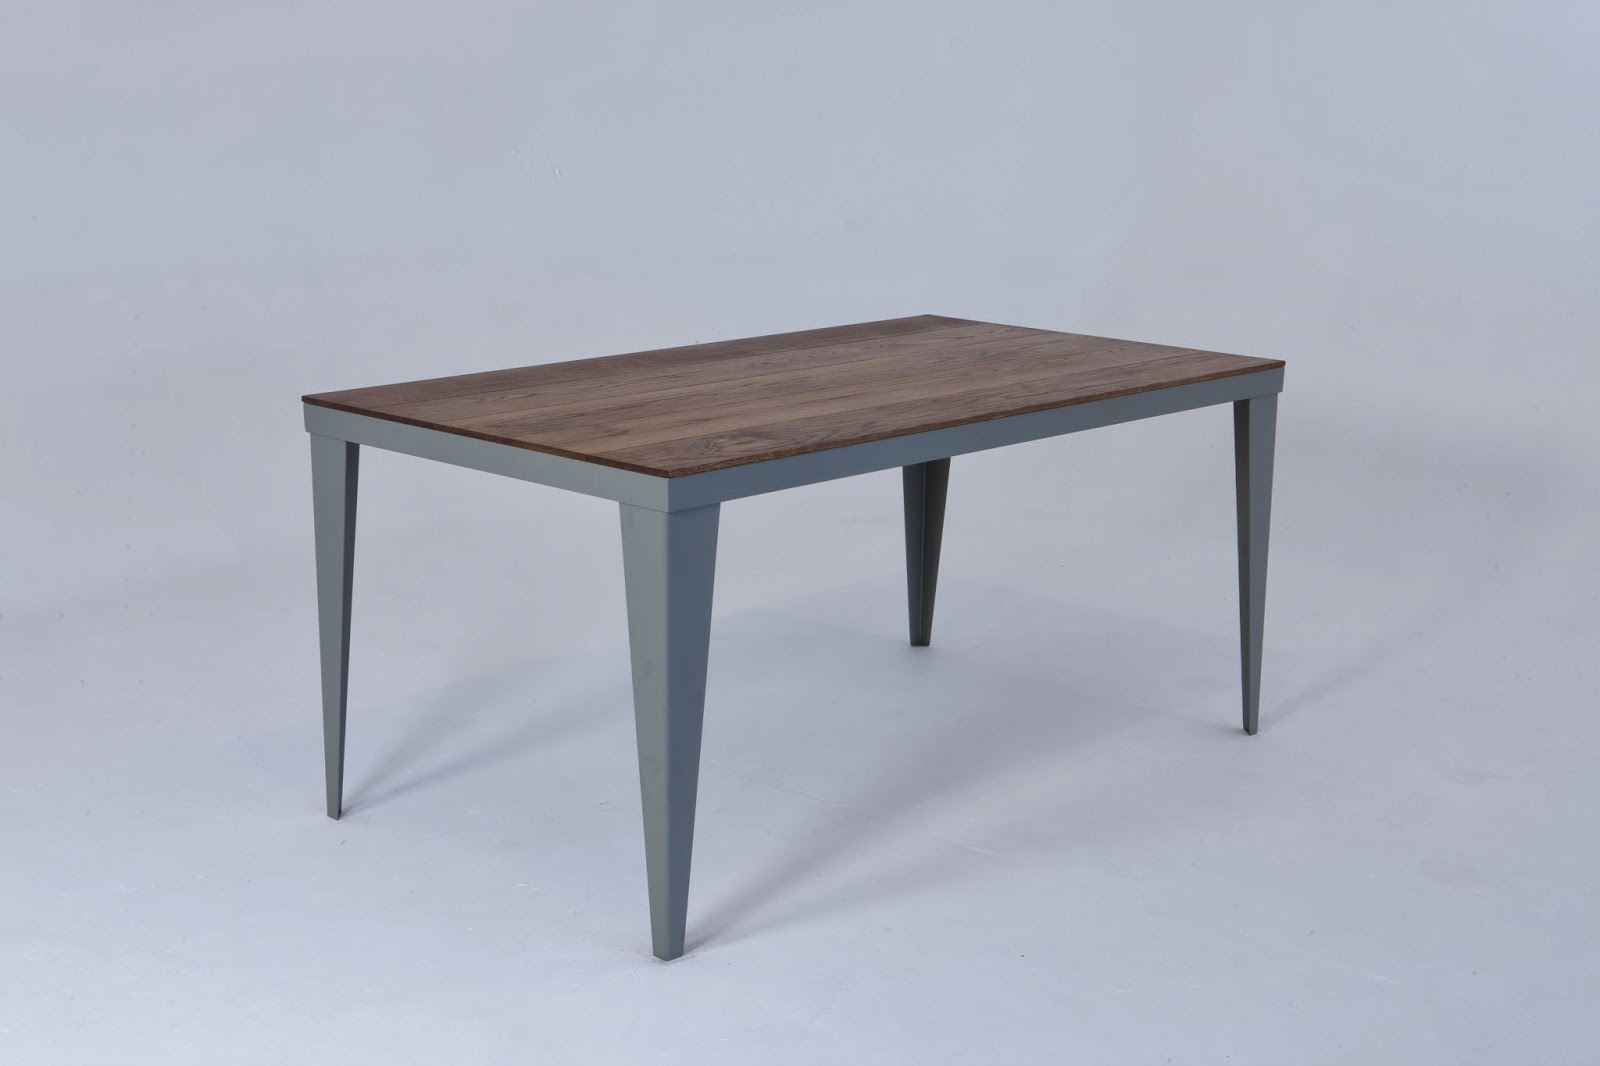 Pigeon Vintage: Industrial dining table